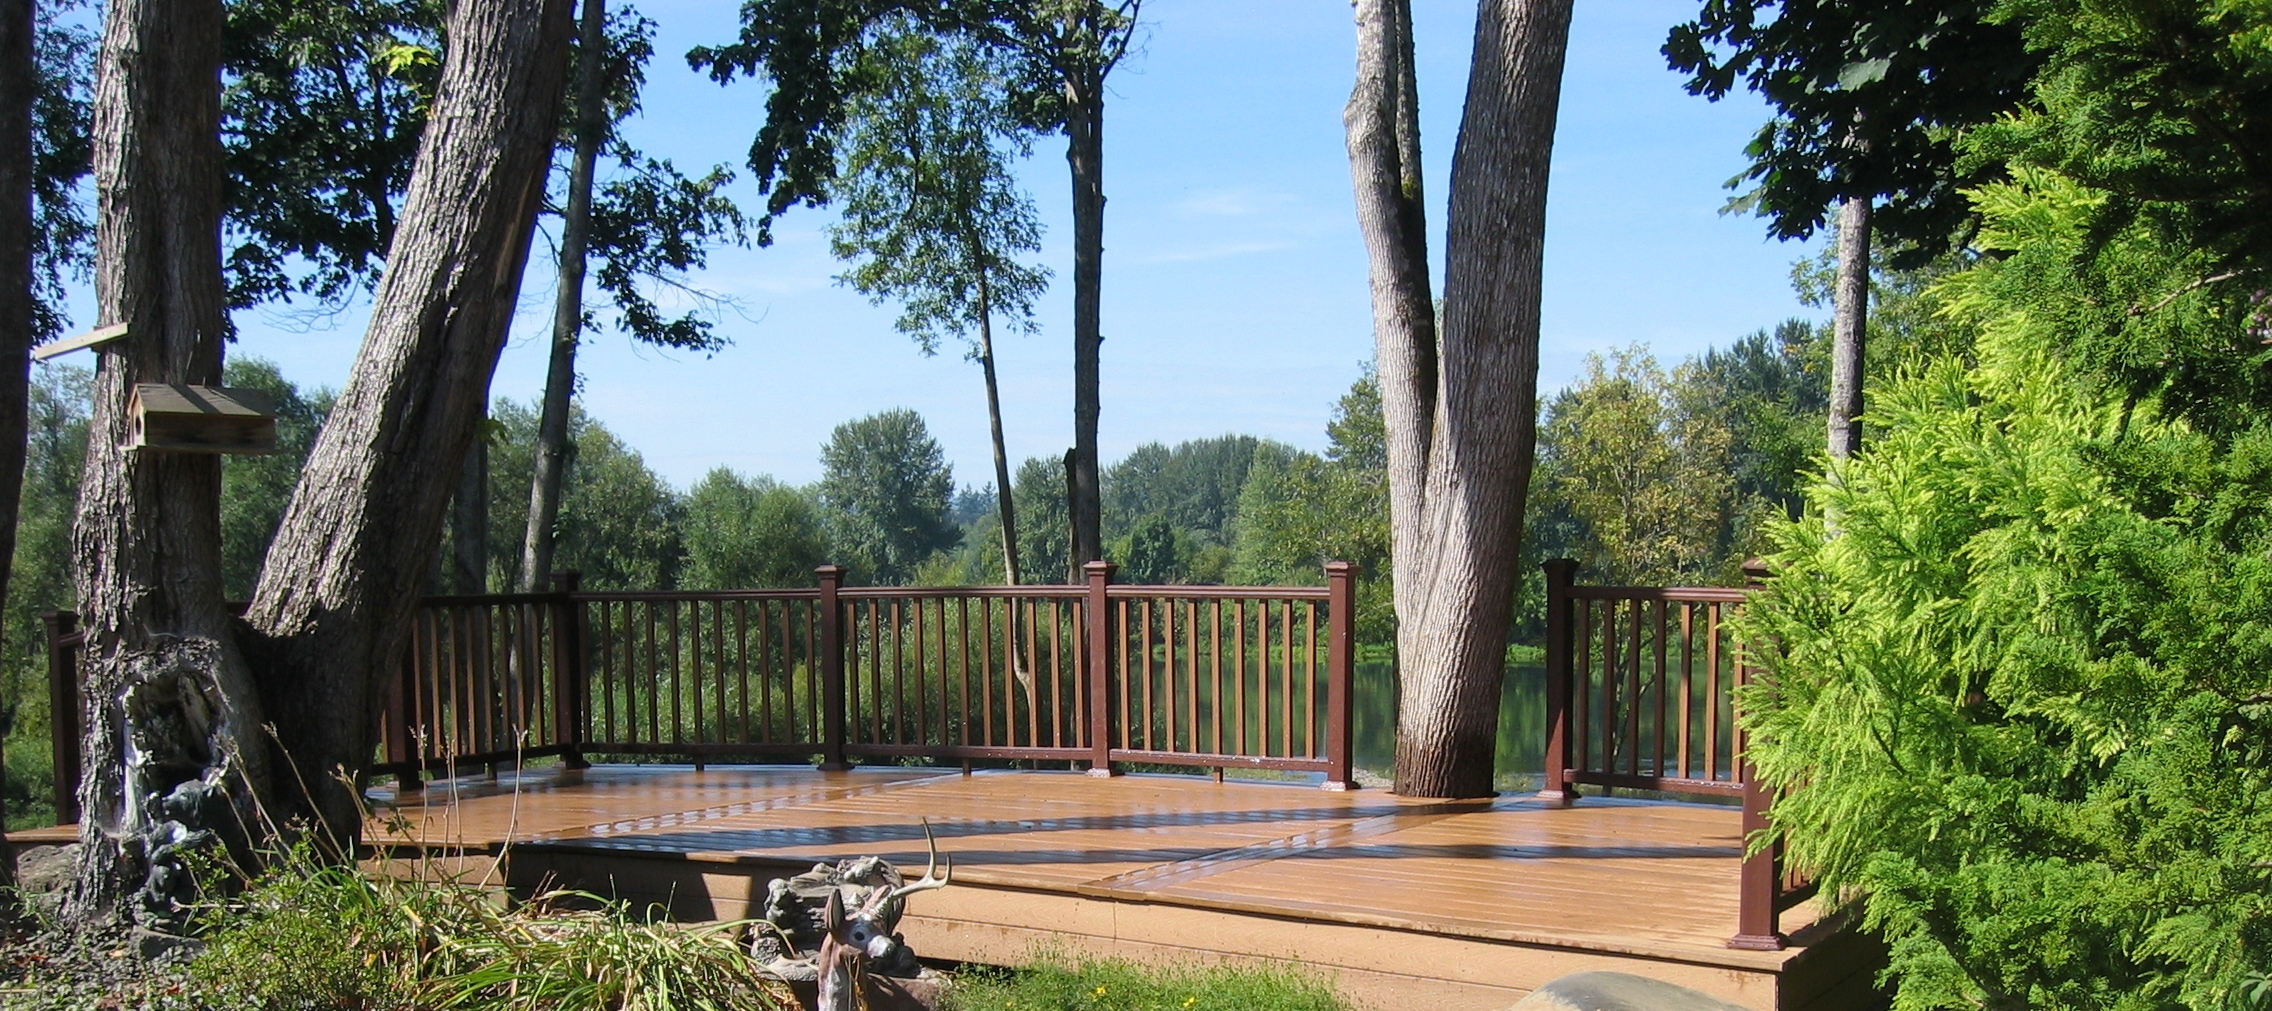 Premium nw construction in salem or 97317 for Nw construction